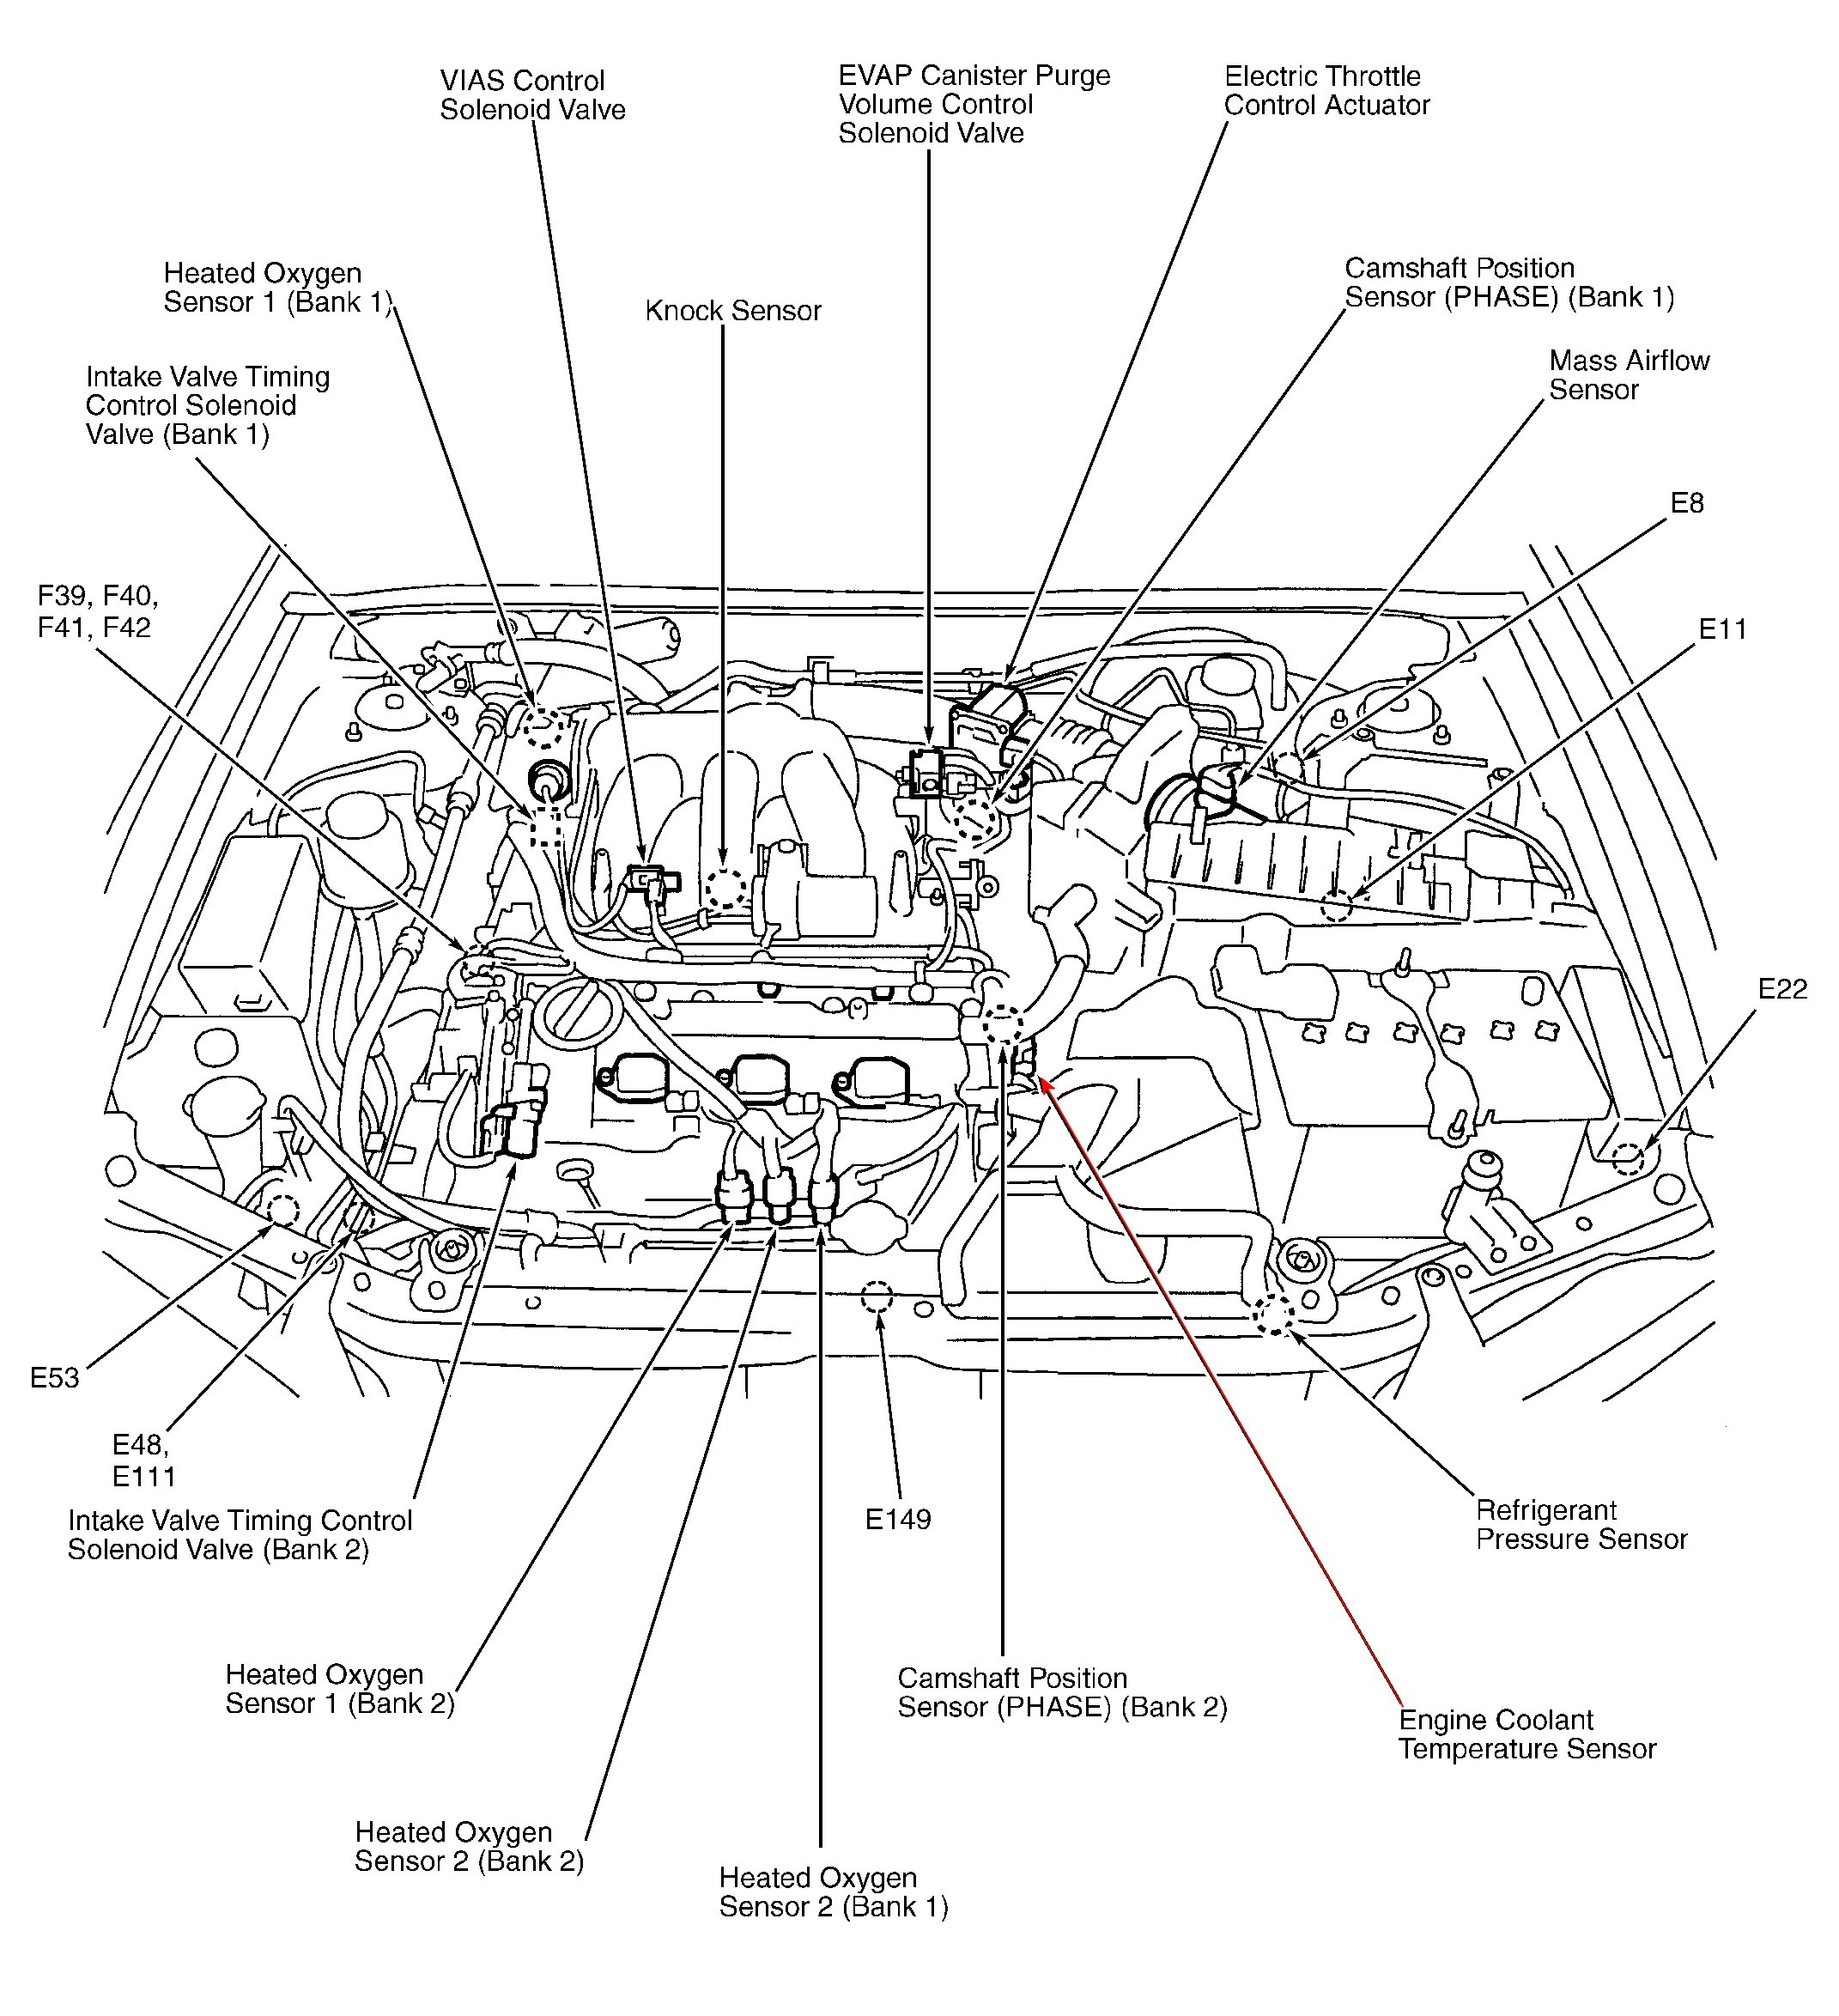 Kia 4 Cyl Engine Diagram - Wiring Diagram Data phone-build -  phone-build.portorhoca.it | 99 Kia Sephia Engine Wiring Diagram |  | portorhoca.it